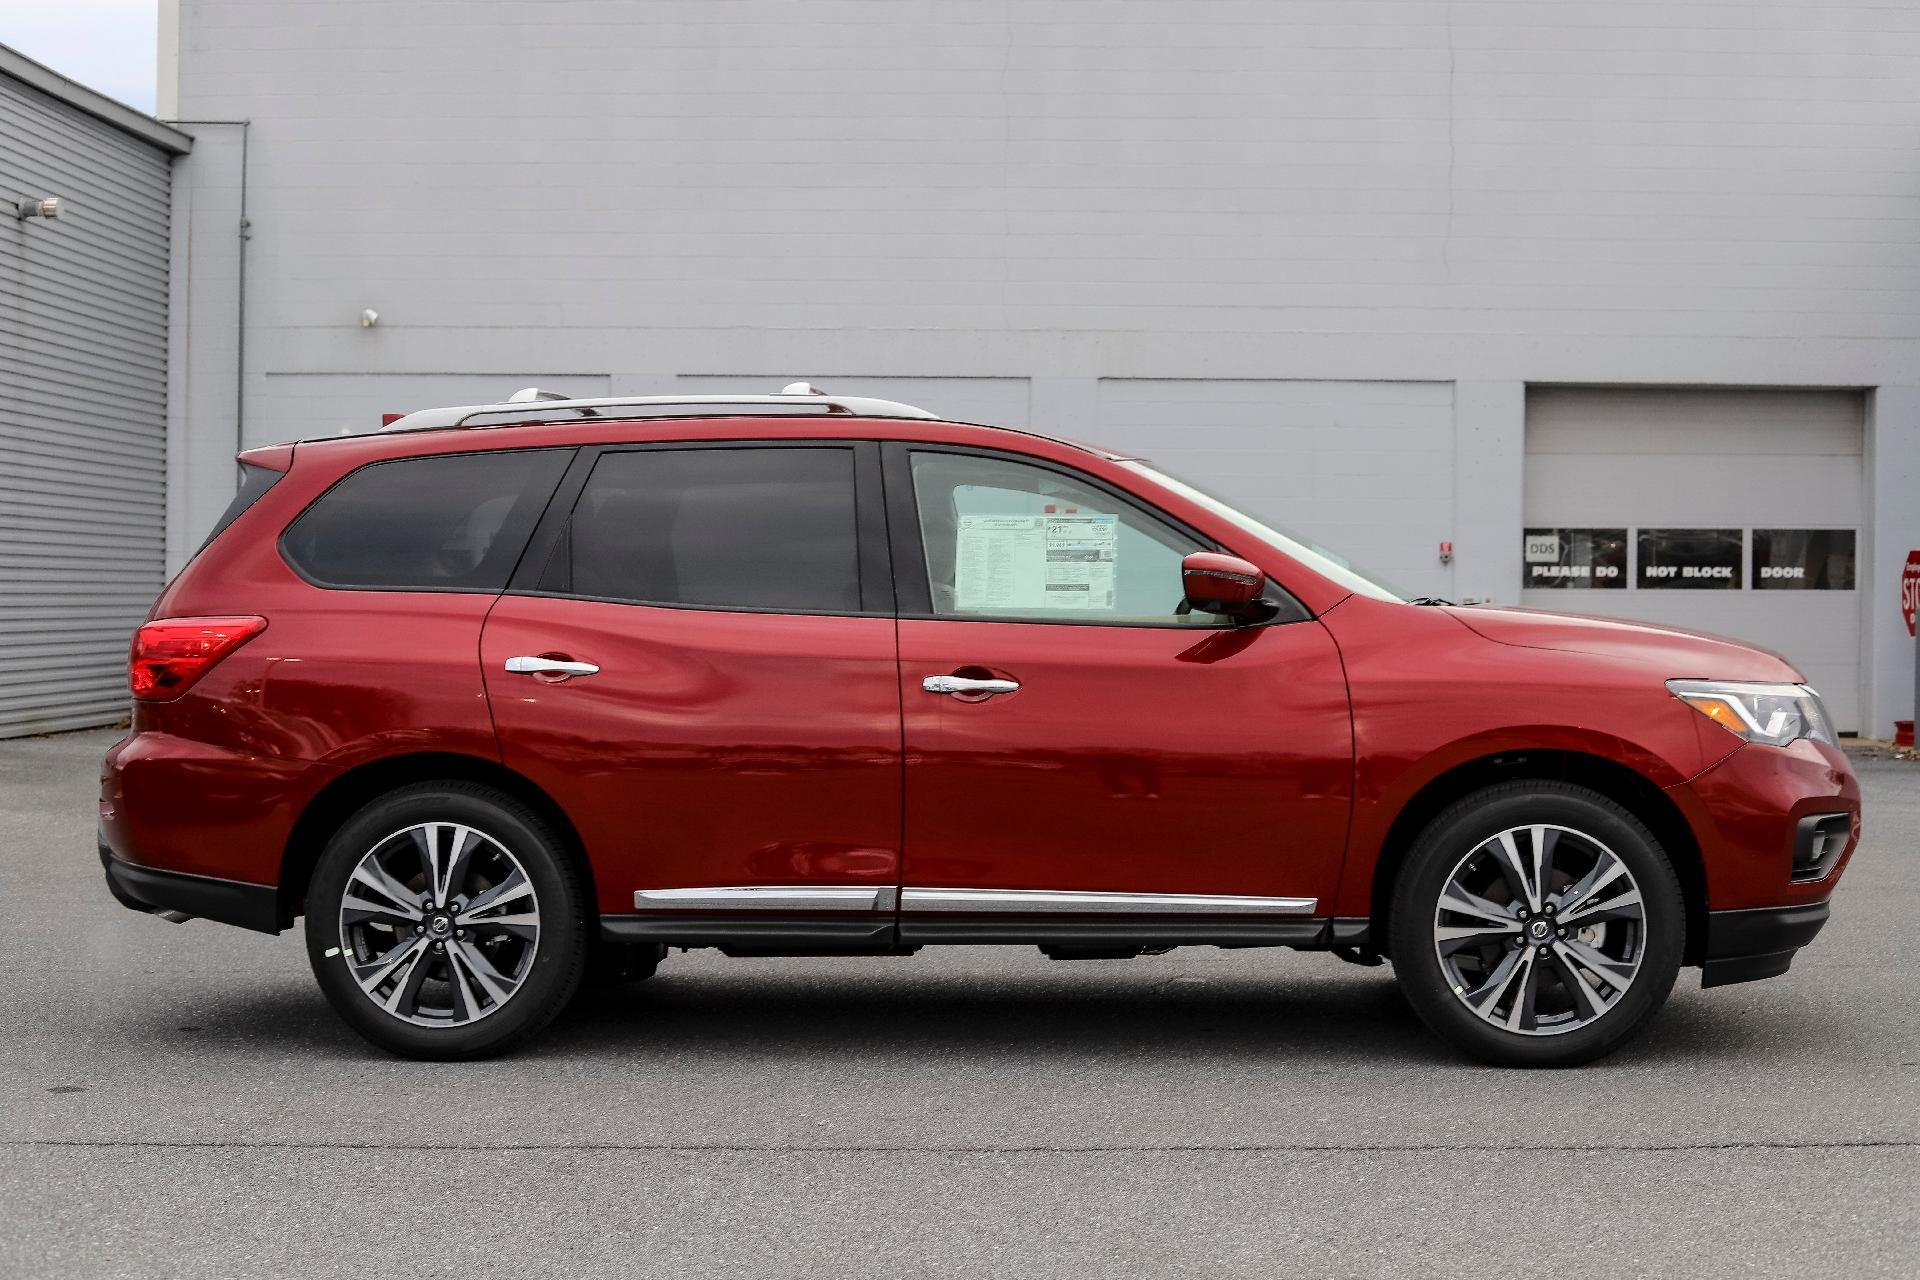 New 2019 Nissan Pathfinder SL for sale $39,710 at M and V Leasing in Brooklyn NY 11223 1